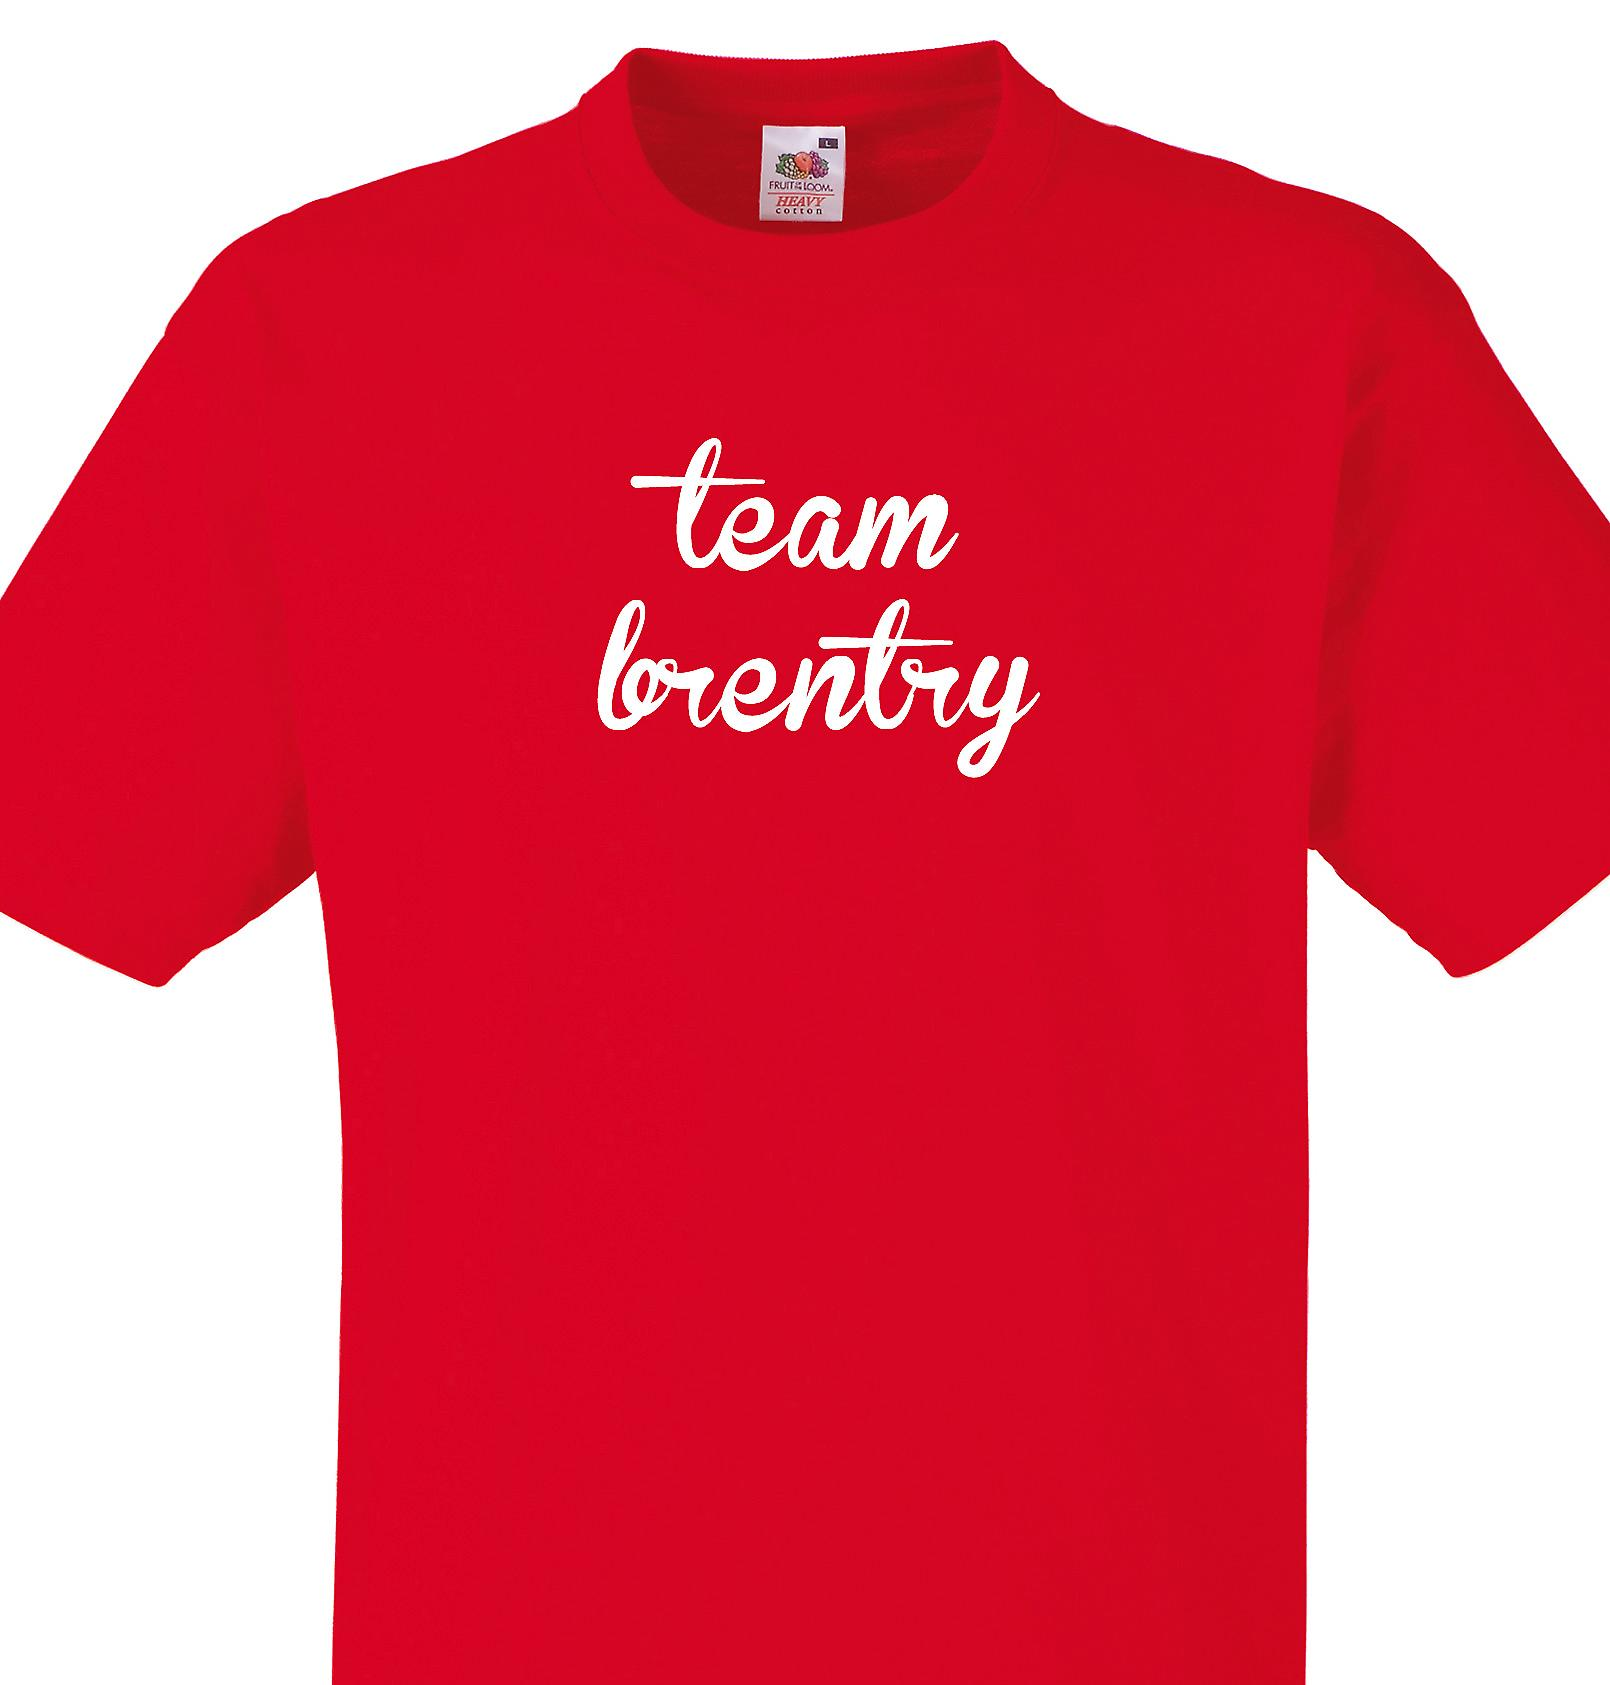 Team Brentry Red T shirt